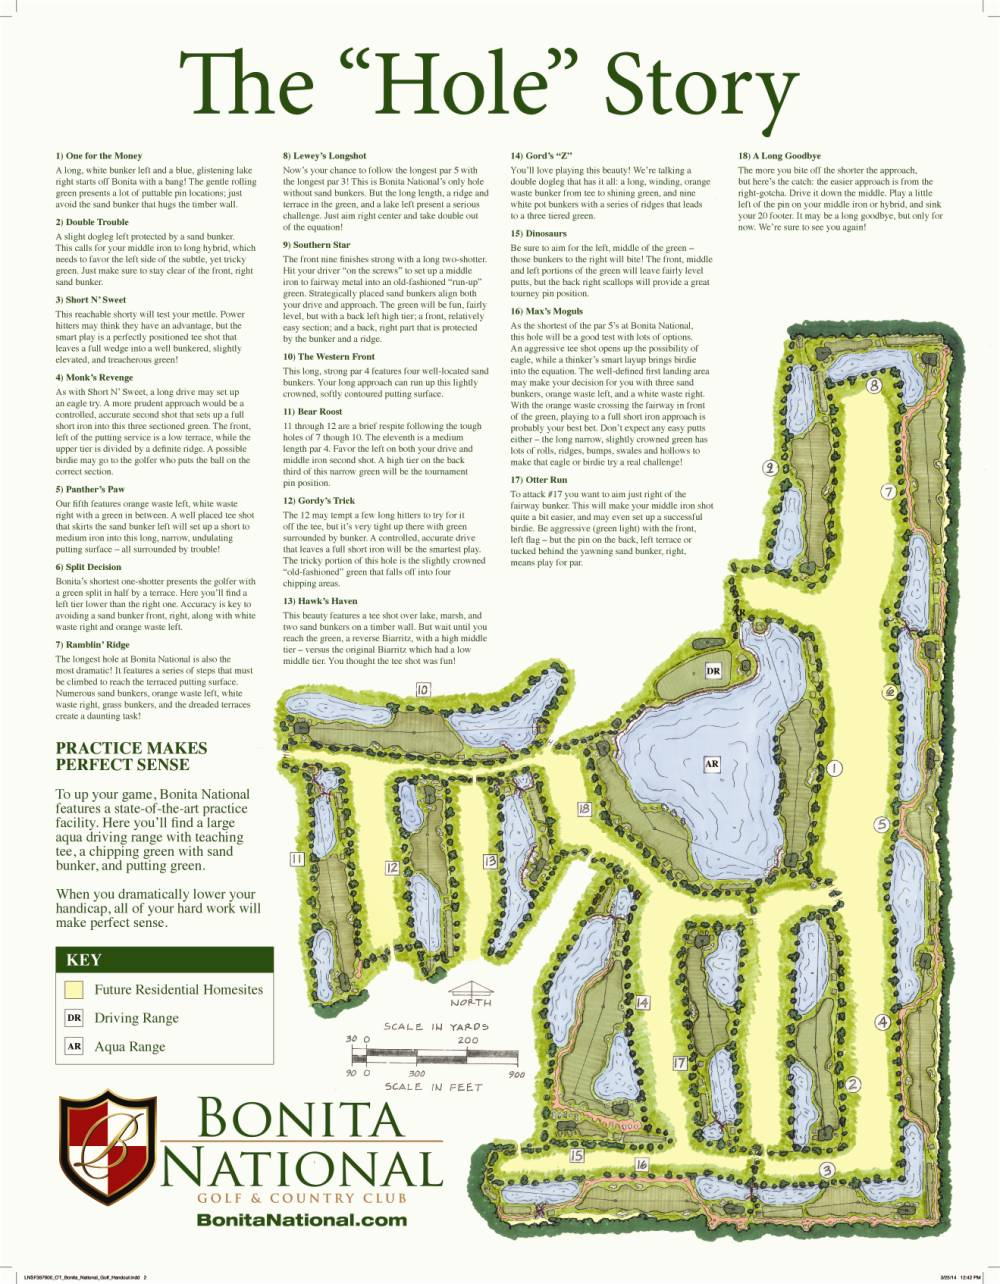 "The ""Hole"" Story - a map of the Bonita National golf course with brief descriptions of each hole"